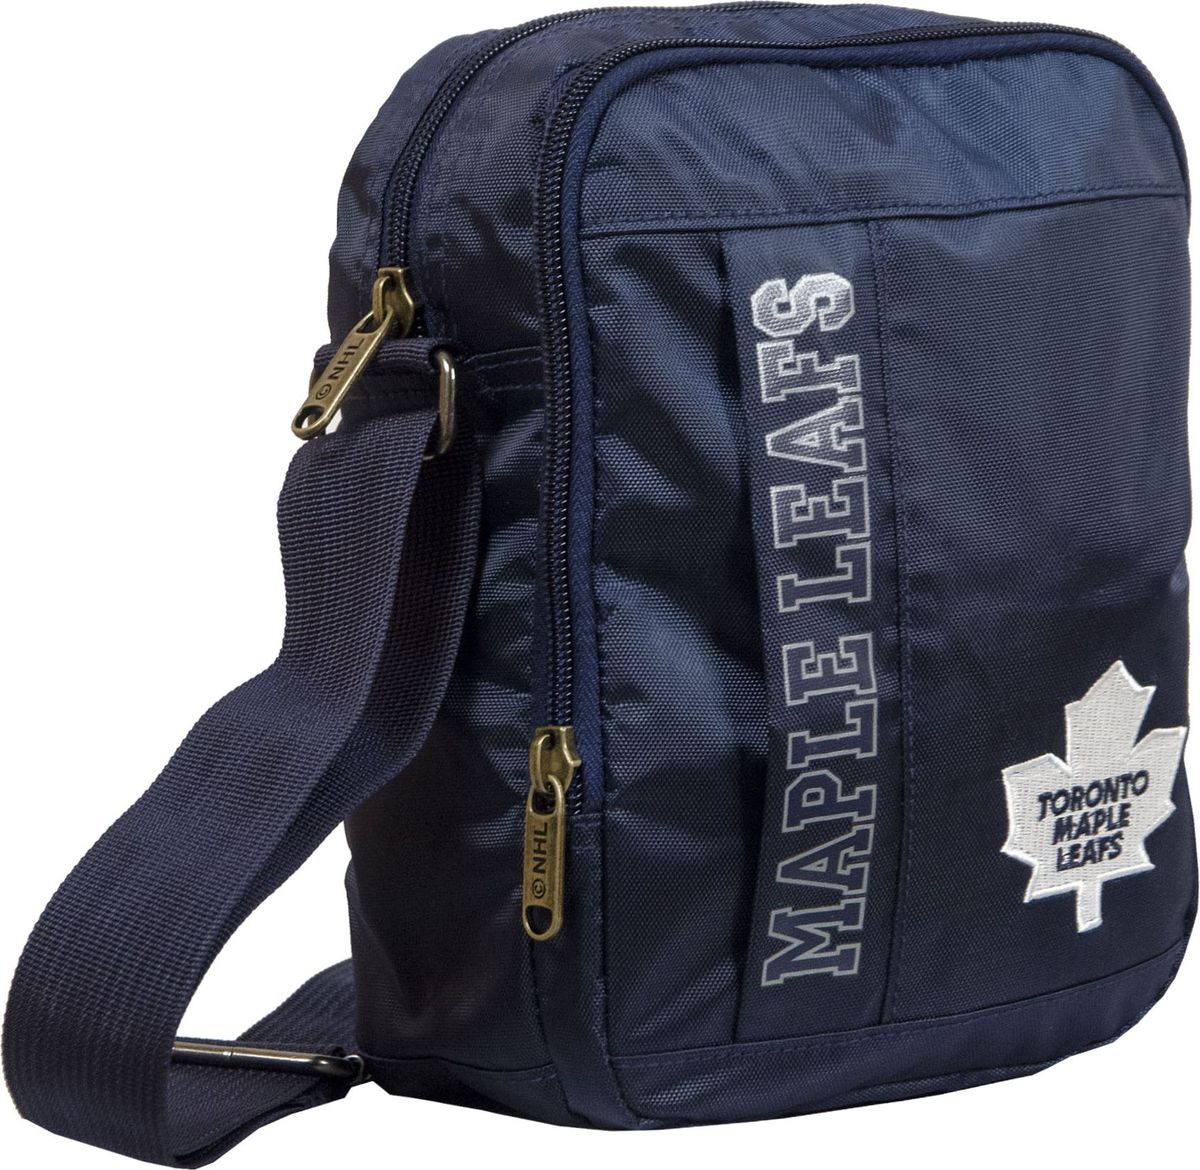 "Сумка на плечо Atributika & Club ""Toronto Maple Leafs"", цвет: синий, 15 л. 58030"